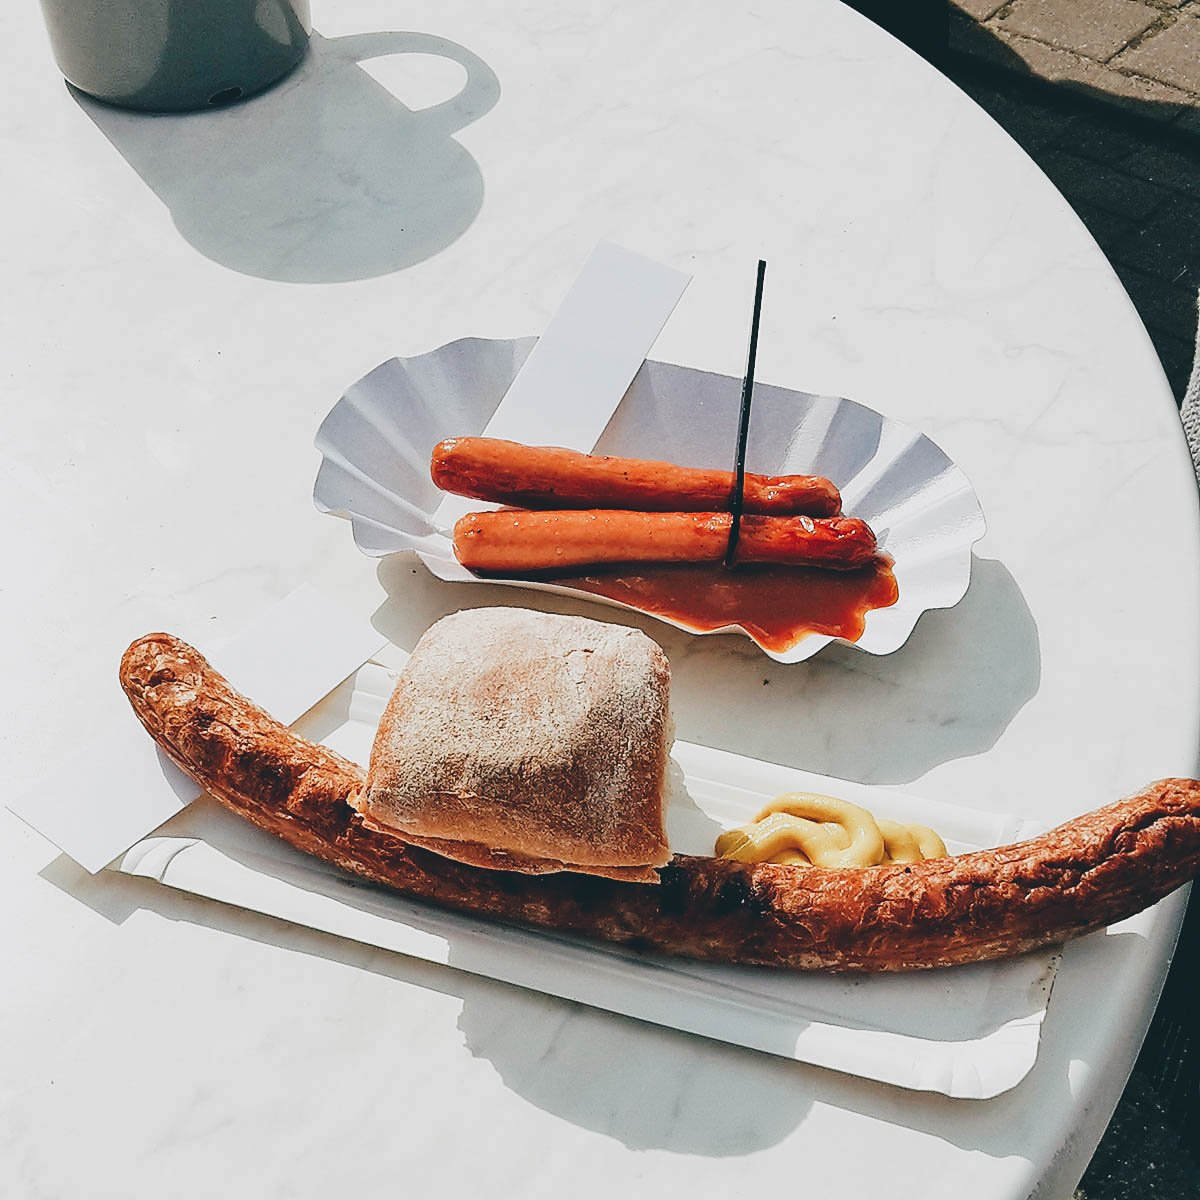 National Dish Quest: The German Bratwurst - A Typical German Dish